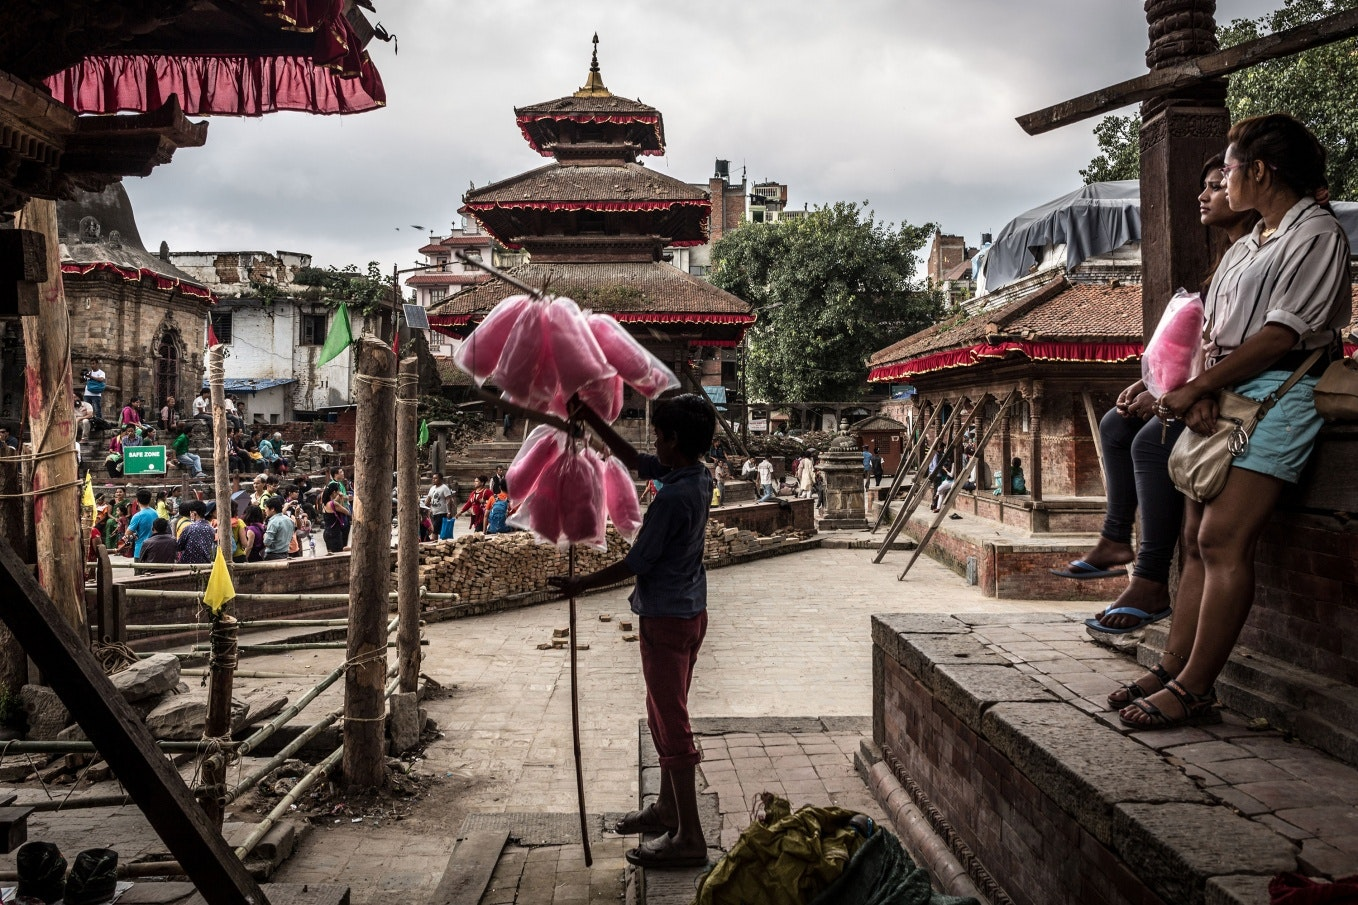 People surrounded by temple buildings